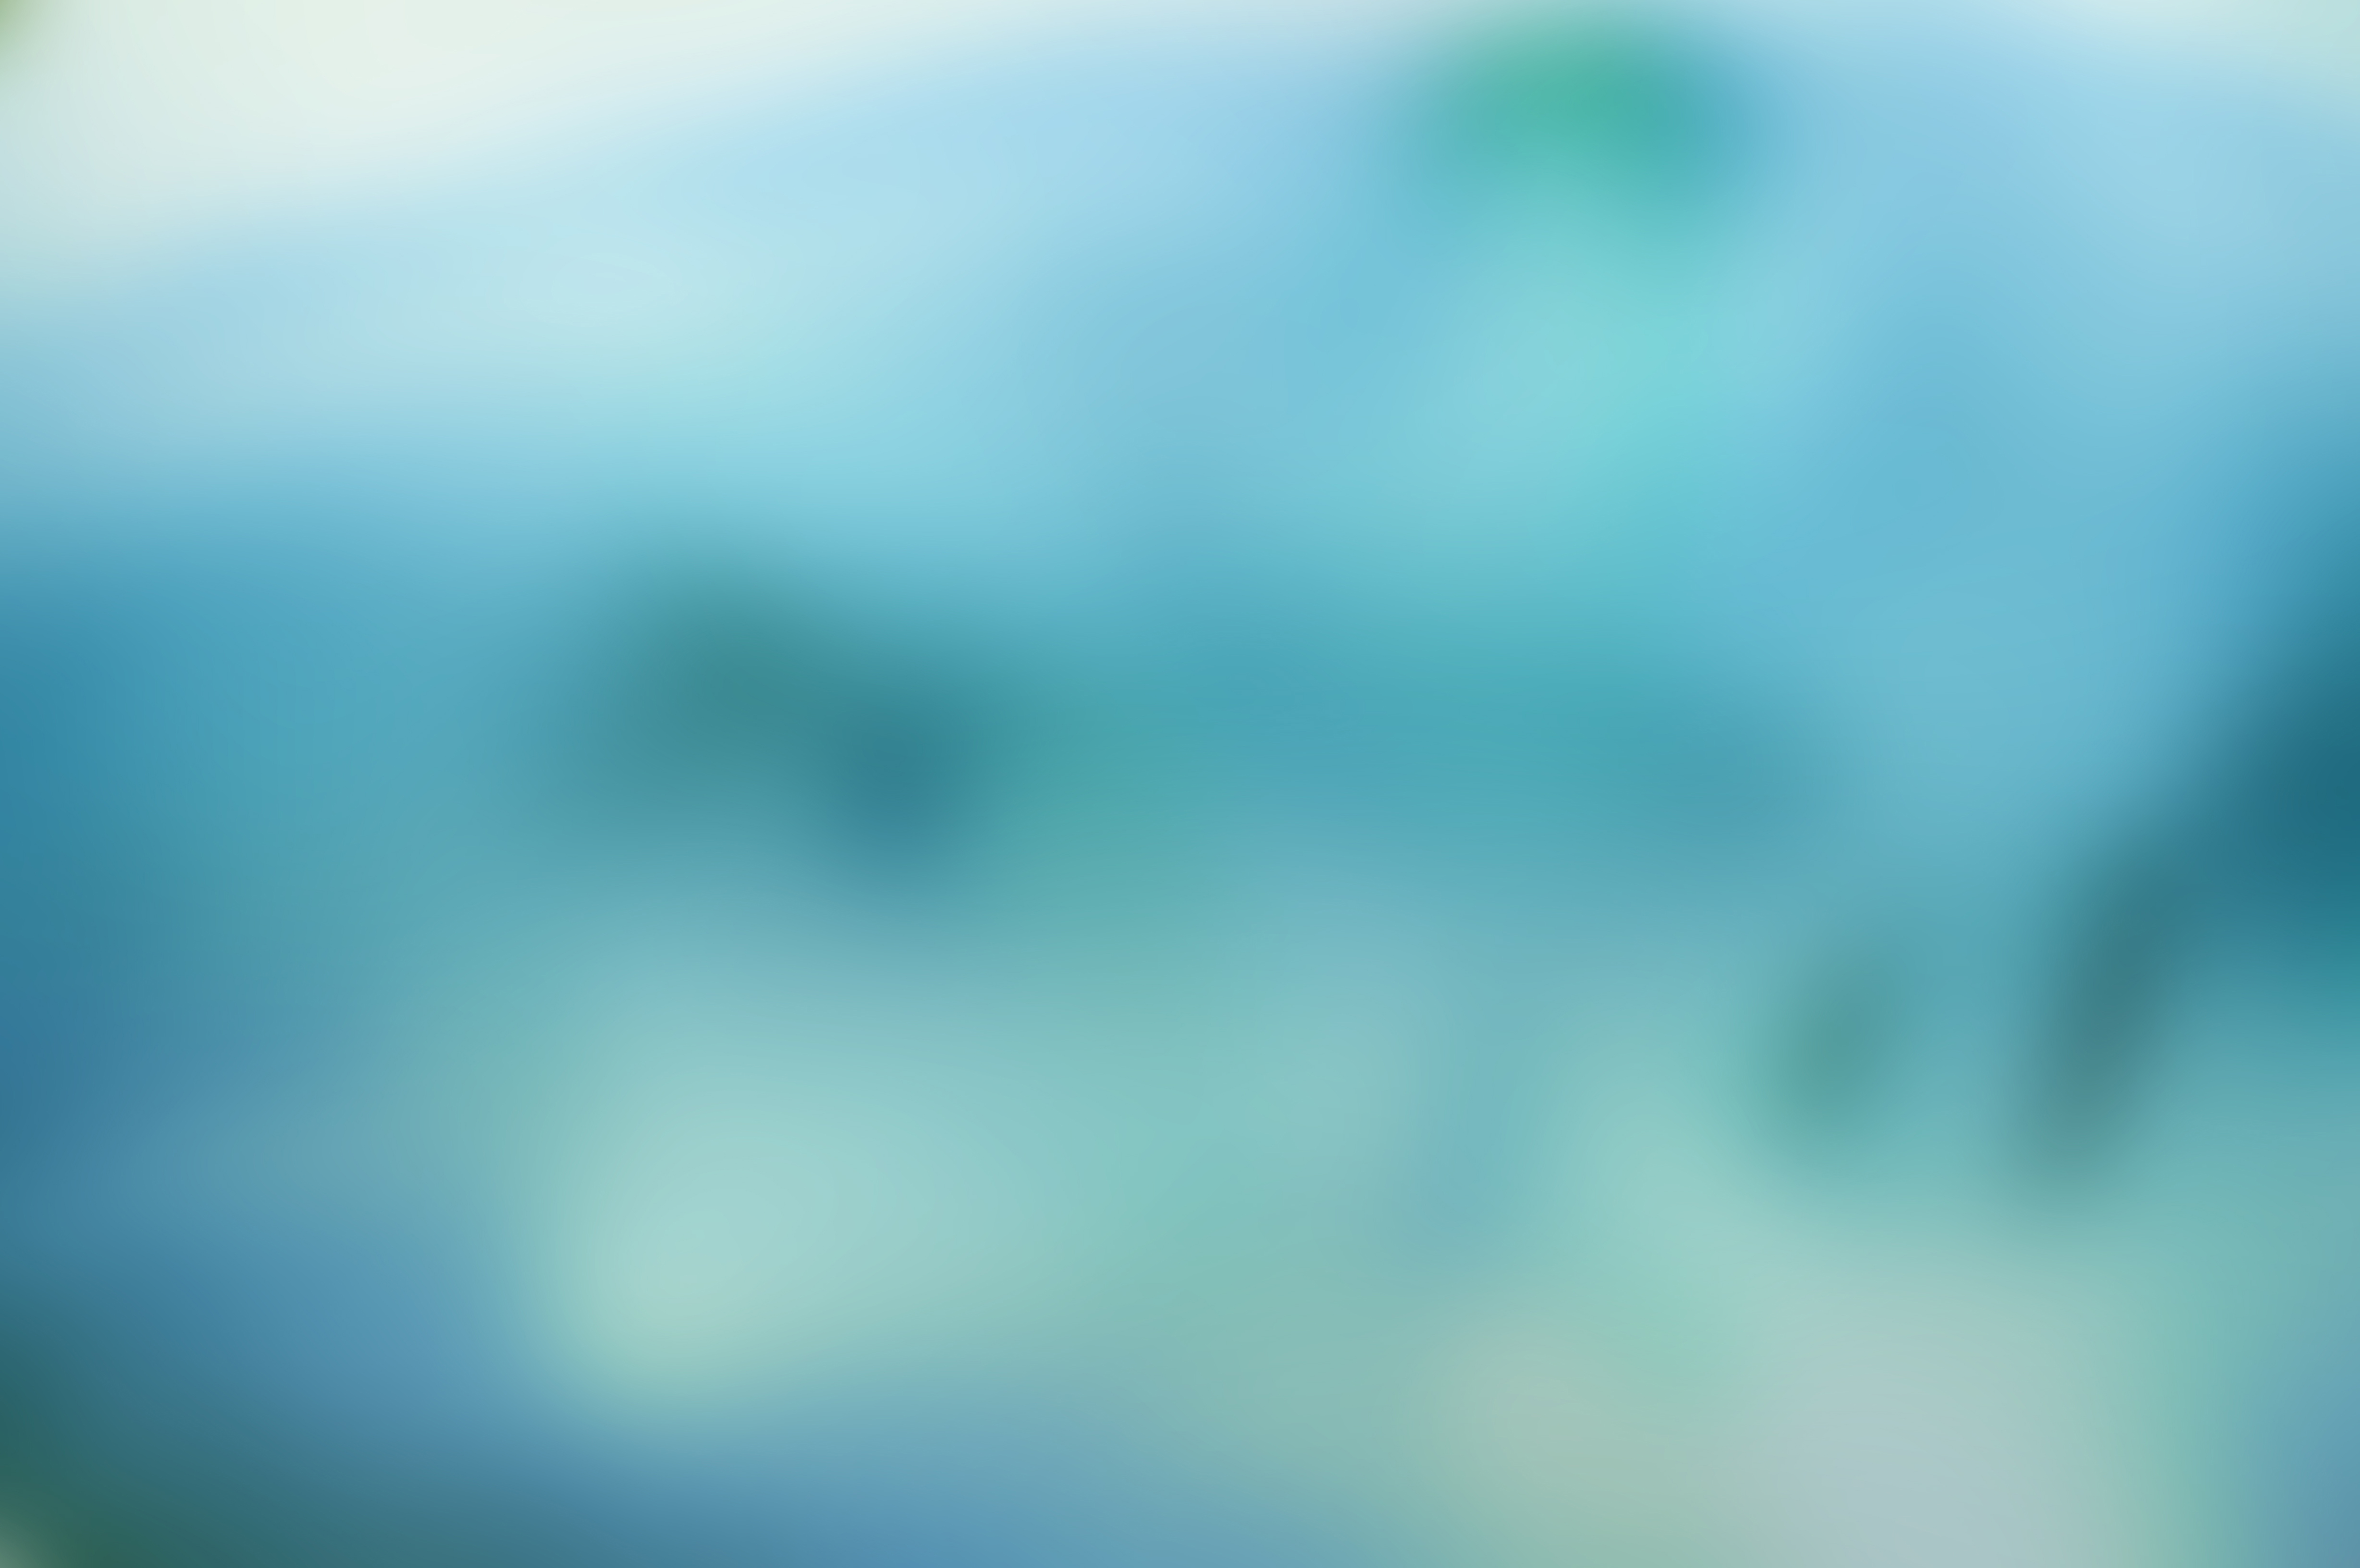 Ethereal Backgrounds example image 8